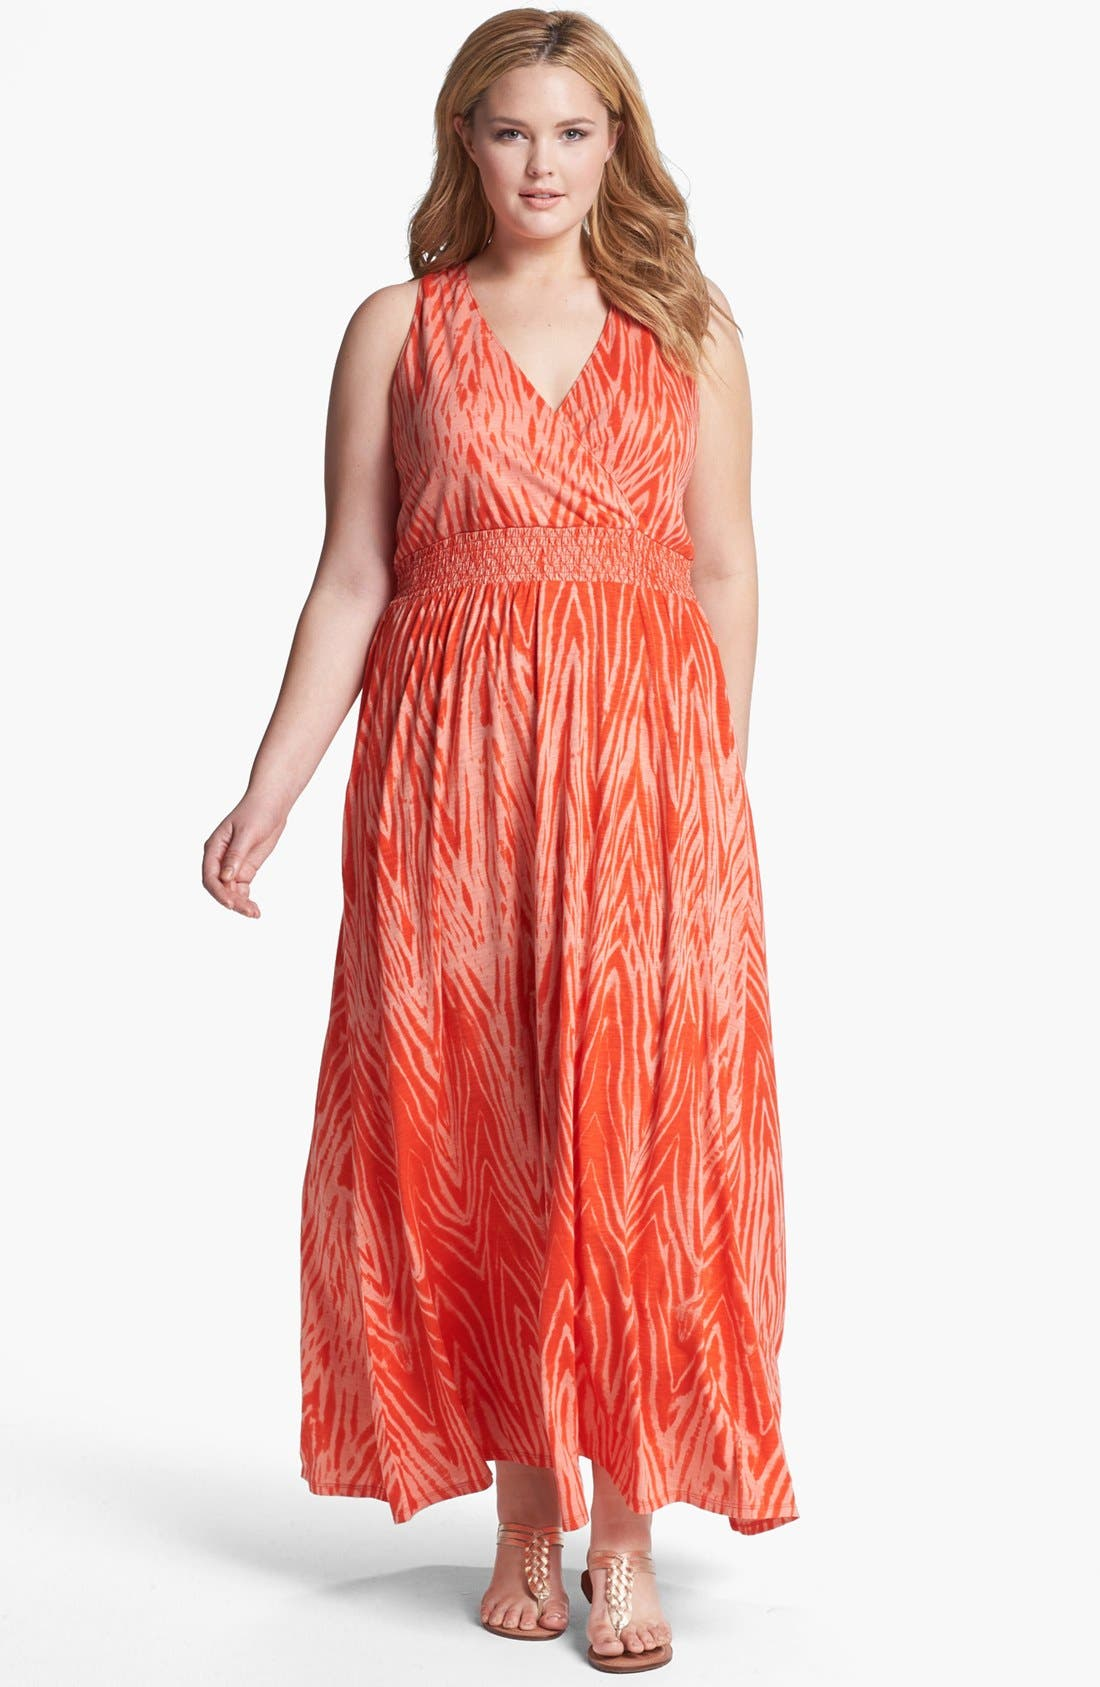 Alternate Image 1 Selected - Lucky Brand 'Watercolor Zebra' Print Maxi Dress (Plus Size)